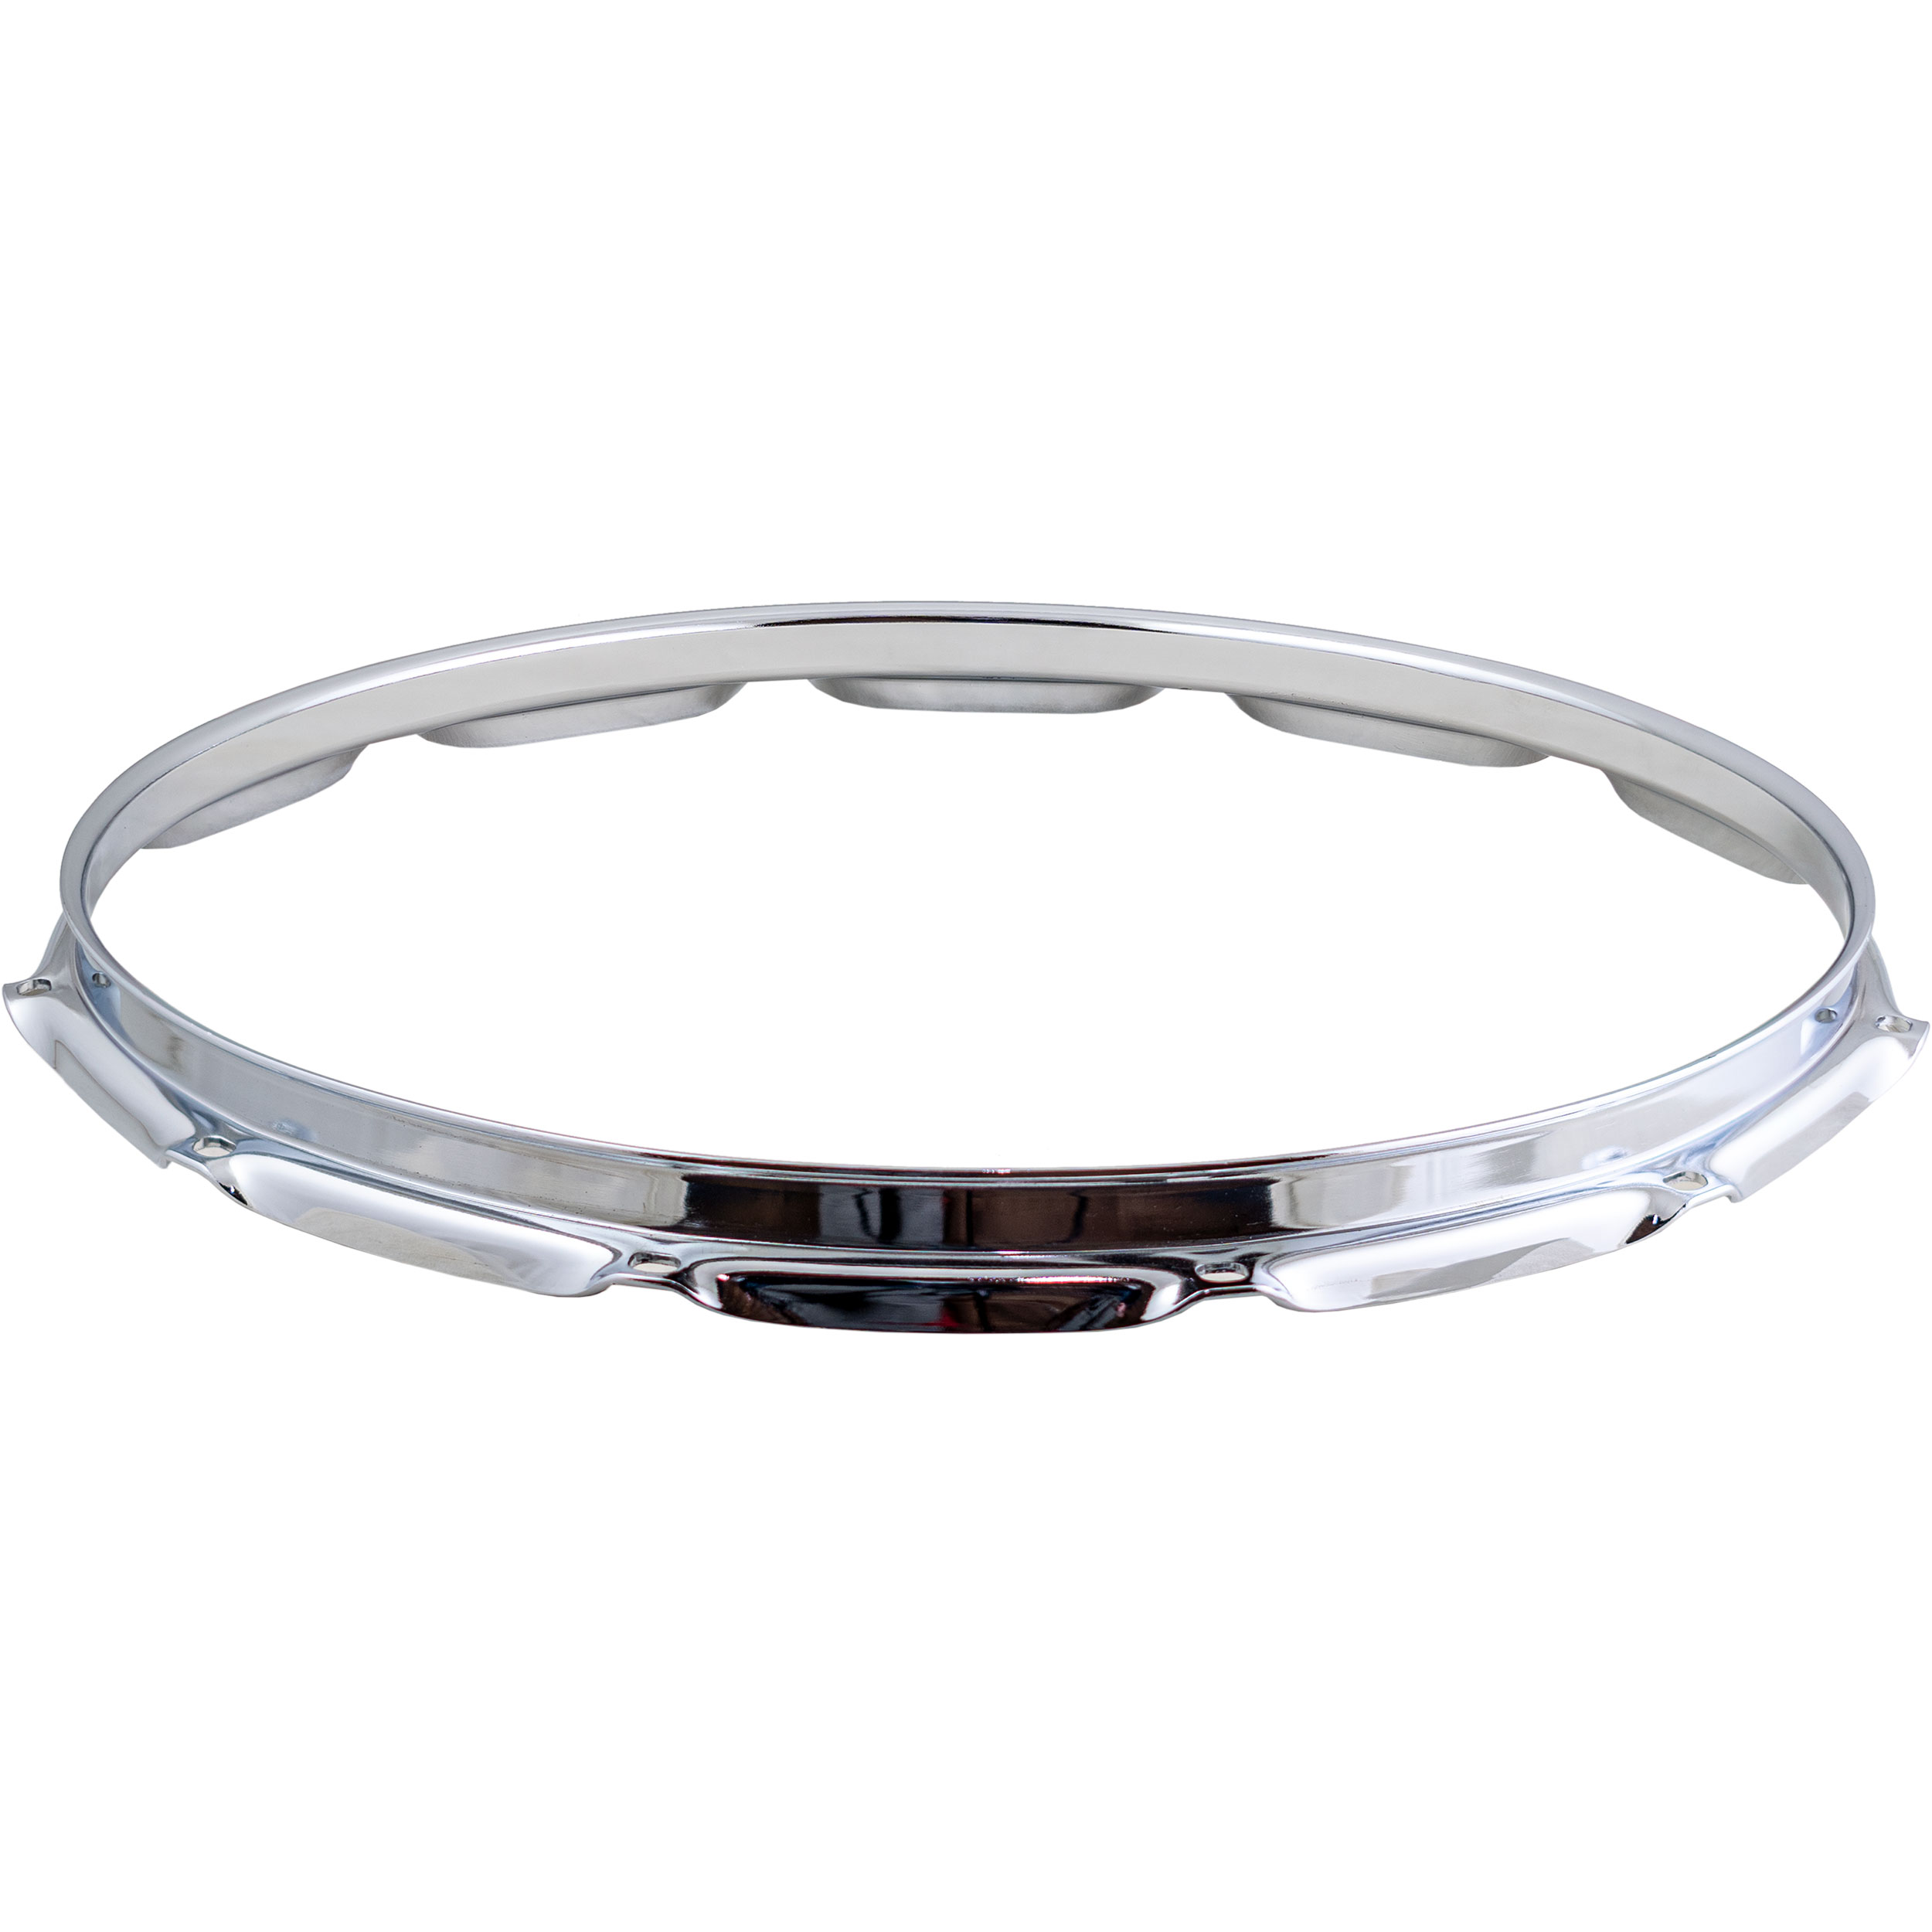 """Tama 14"""" 12-Hole Batter (Top) Hoop for Starlight Series Drums"""